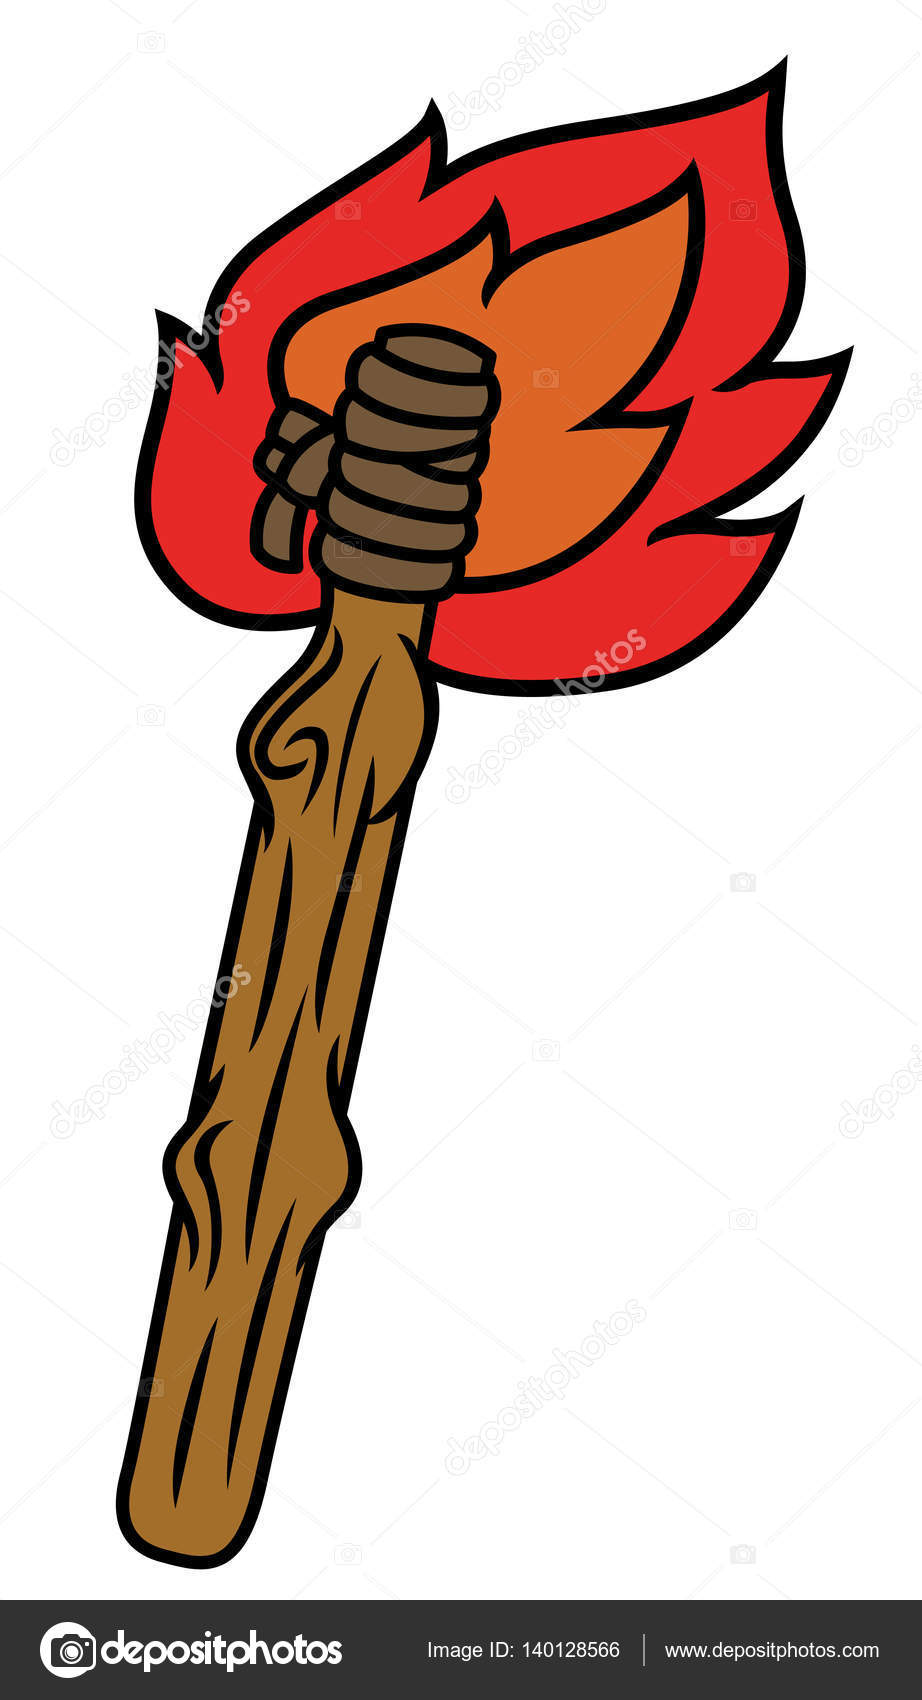 Burning Wooden Torch Illustration Isolated on White — Stock Vector ... for Burning Wooden Torch  545xkb